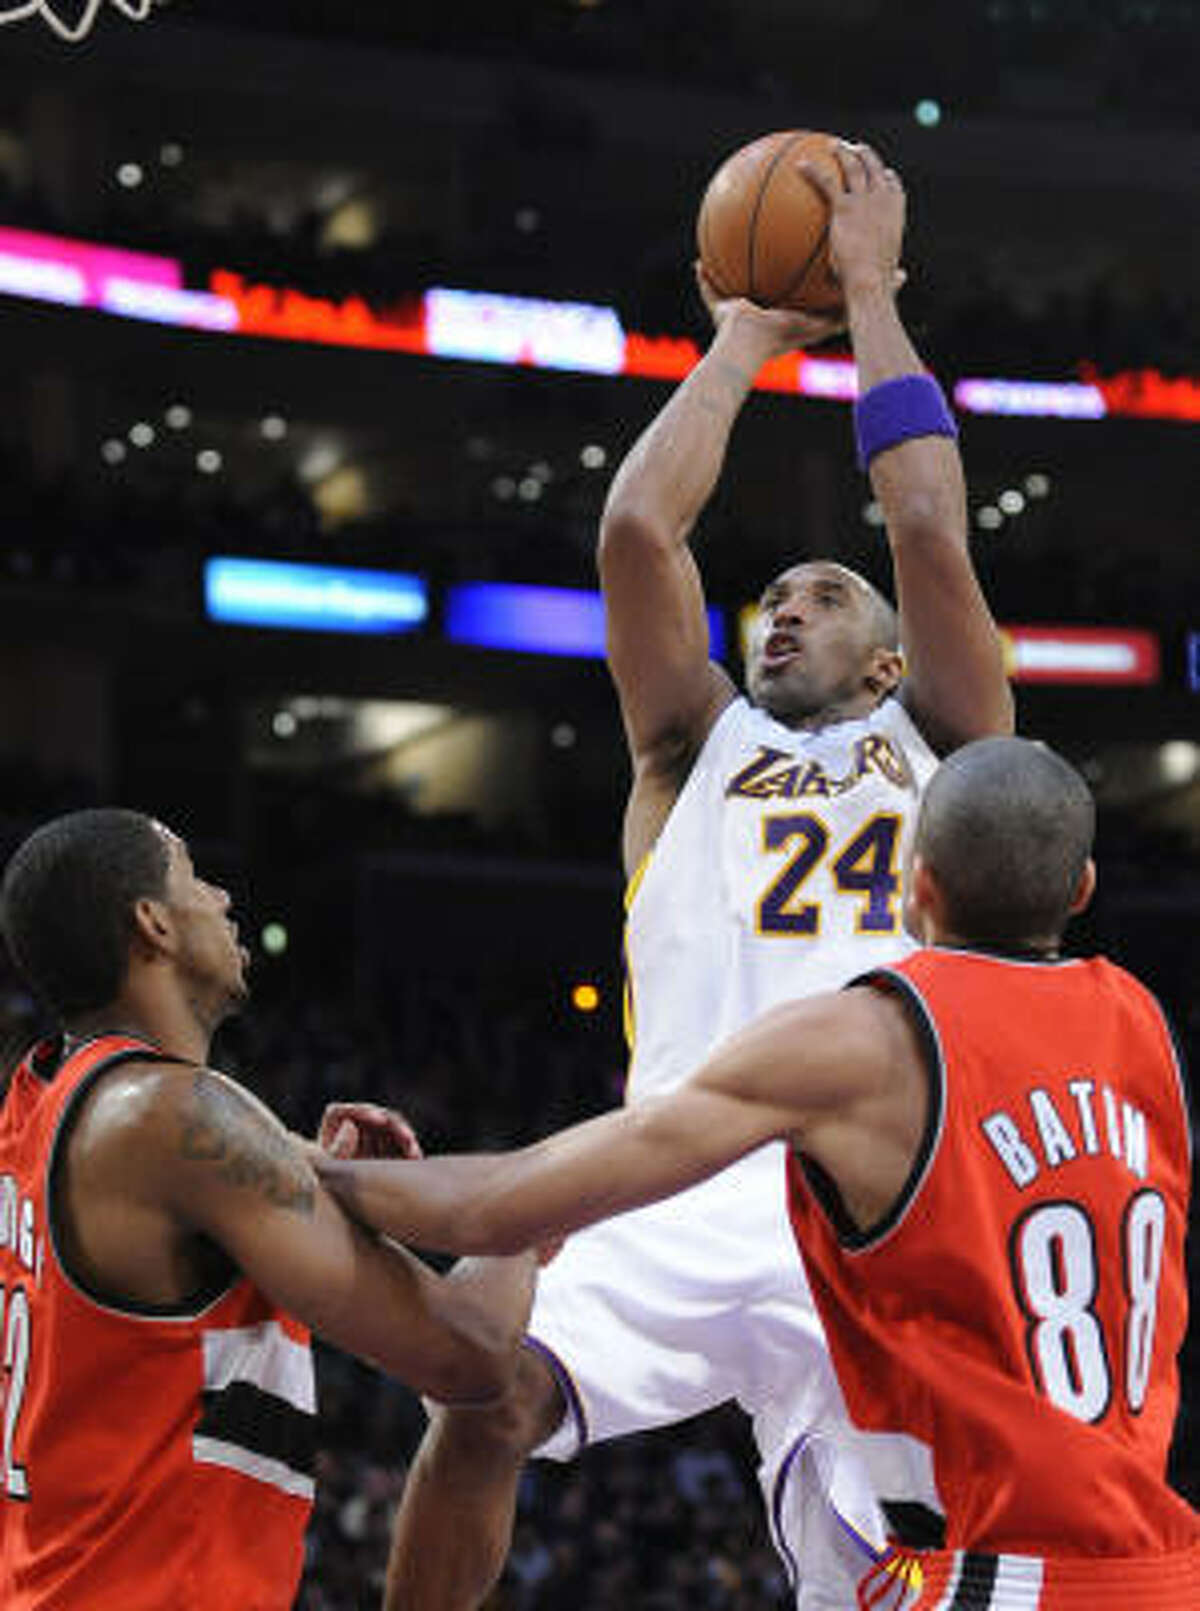 No. 1 LOS ANGELES LAKERS - (Last wk: 2) - 29-6 . Kobe Bryant (24) and the Lakers lost Jordan Farmar to a knee injury, but things are going so well with five wins in a row that they haven't even given Stephon Marbury and all of his baggage a glance.